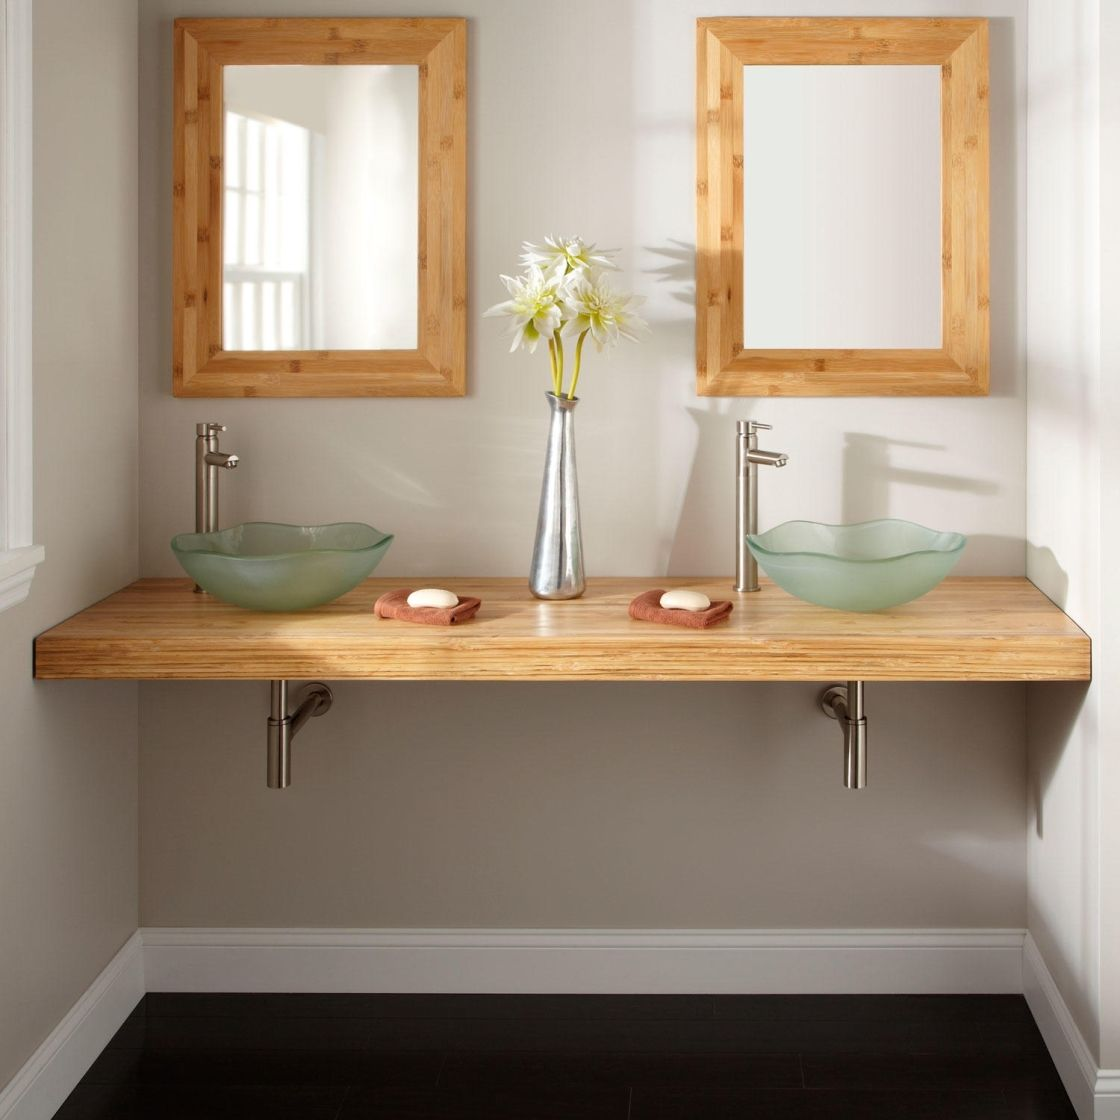 Diy Custom Floating Bathroom Vanity Design In Solid Natural Bamboo With Aqua Glass Vessel Bowl